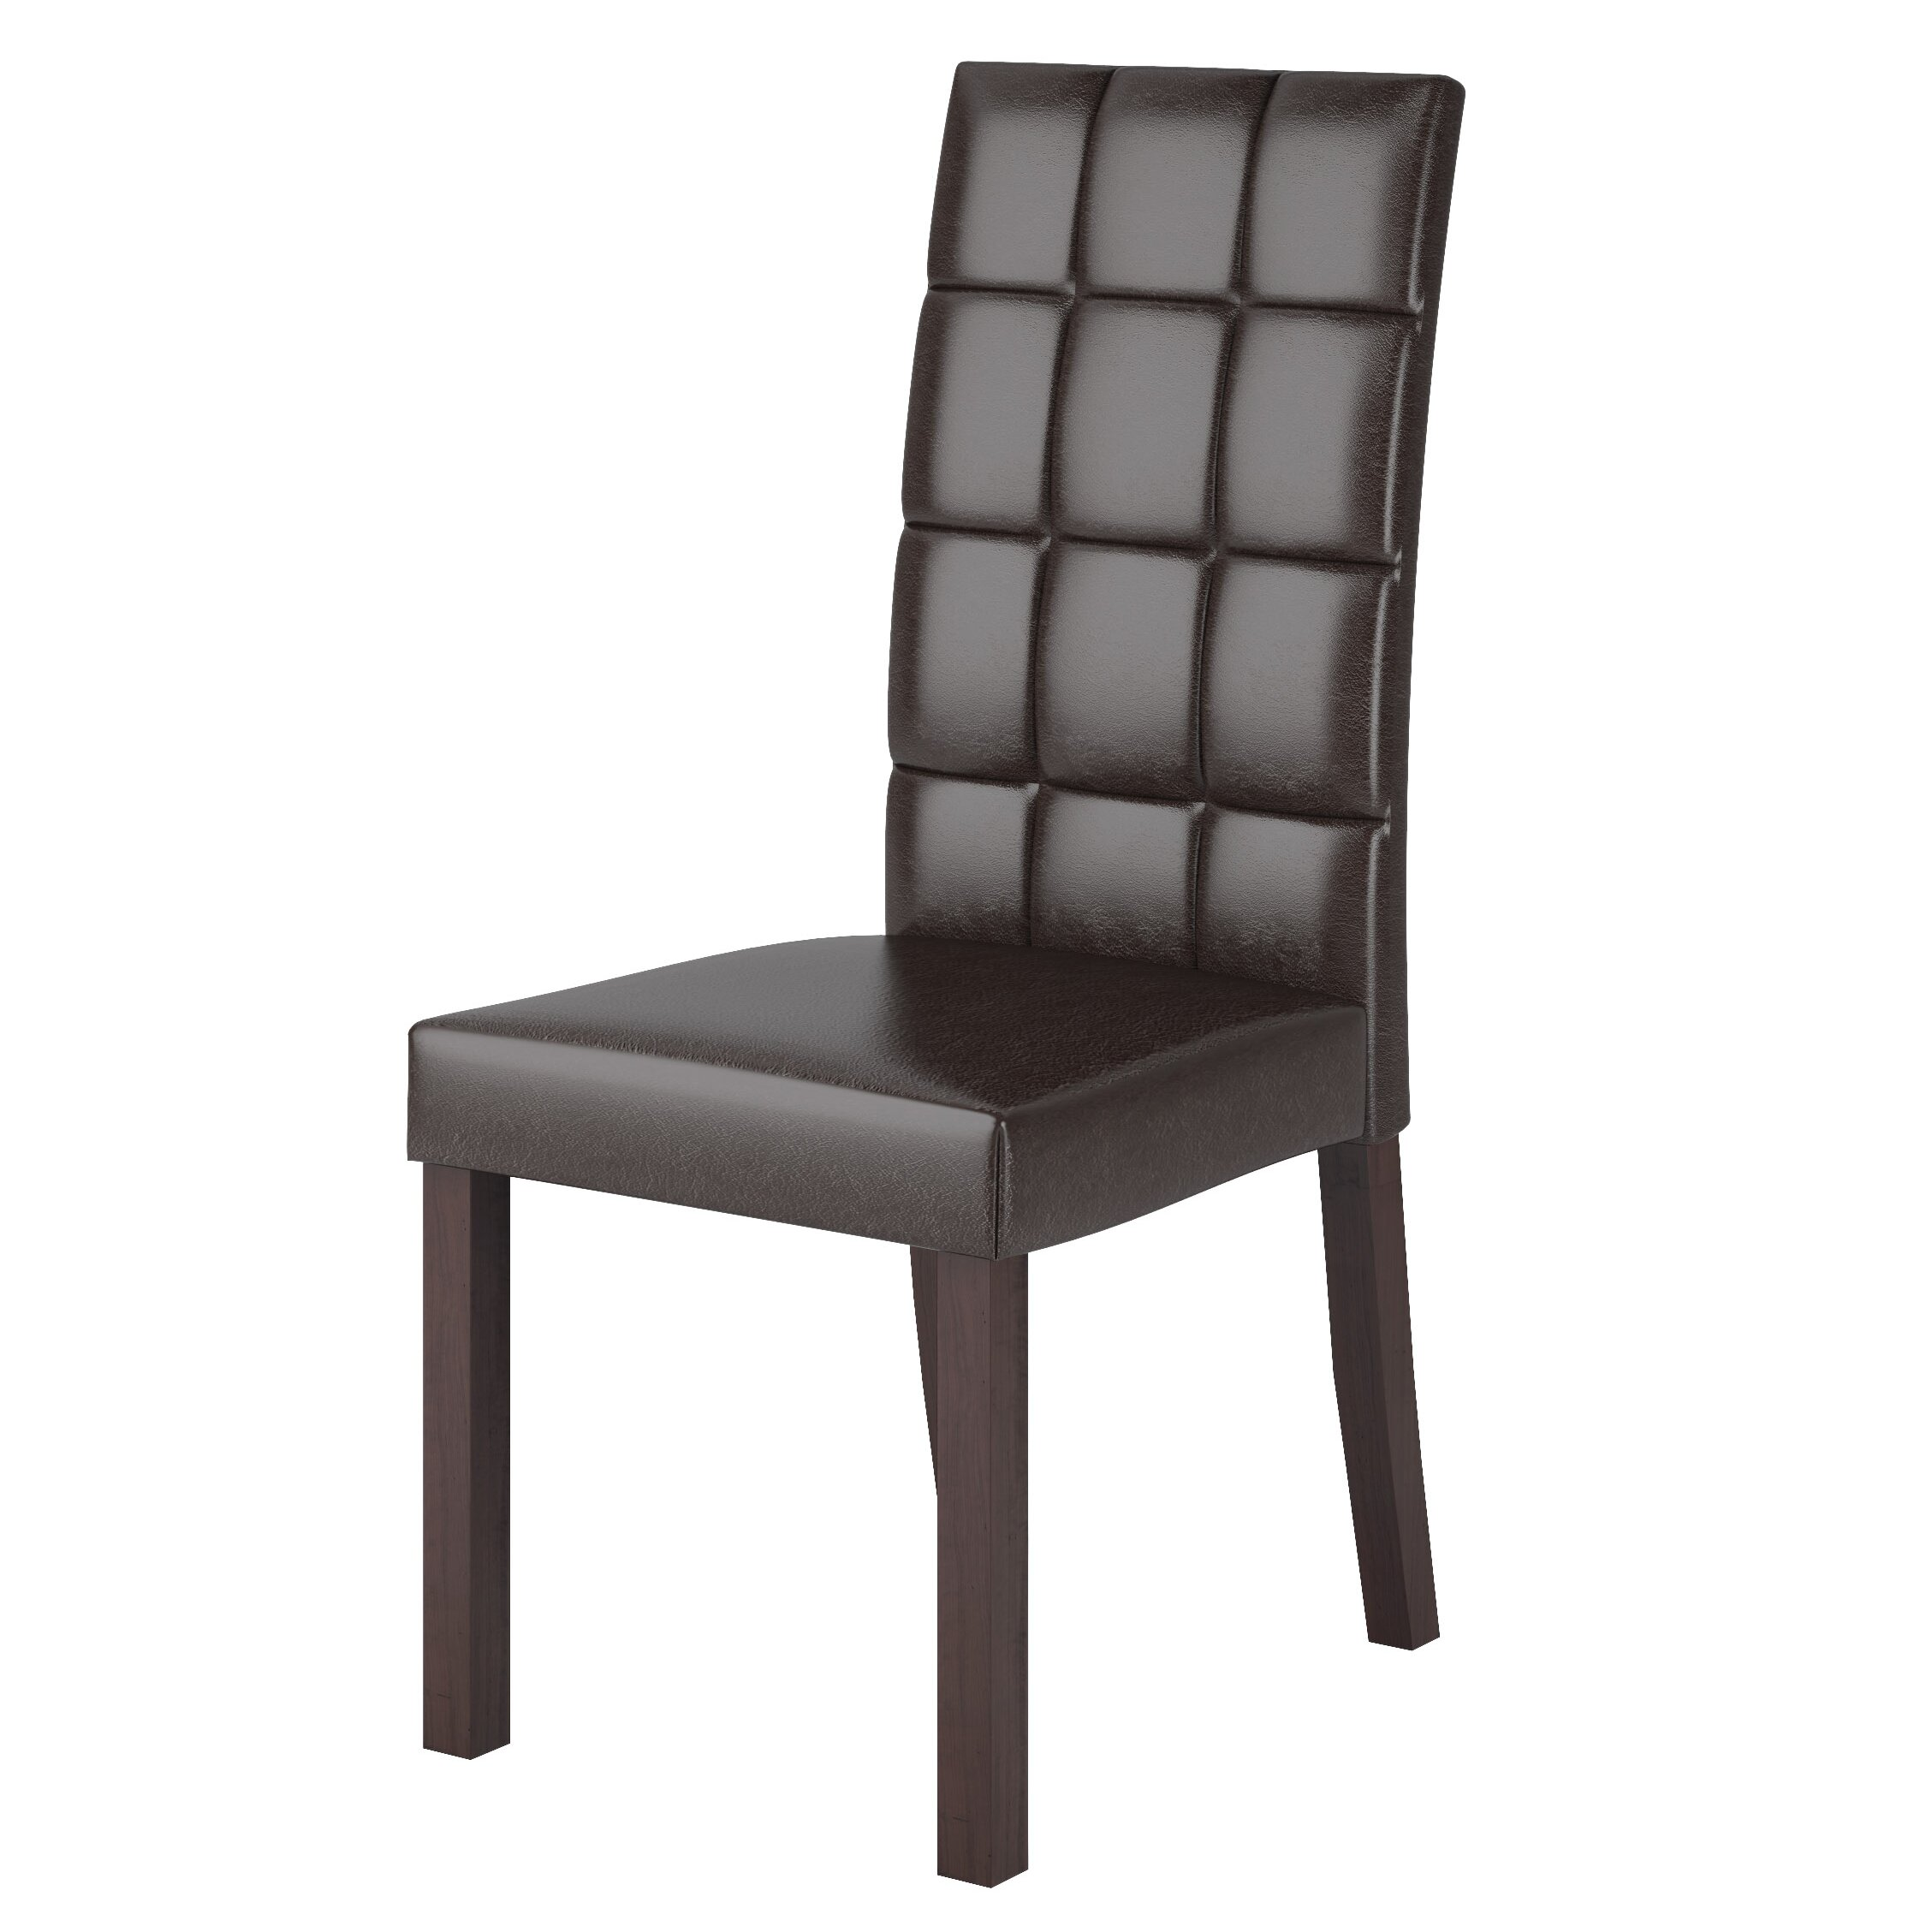 Dcor design atwood parsons chair for What is a parsons chair style